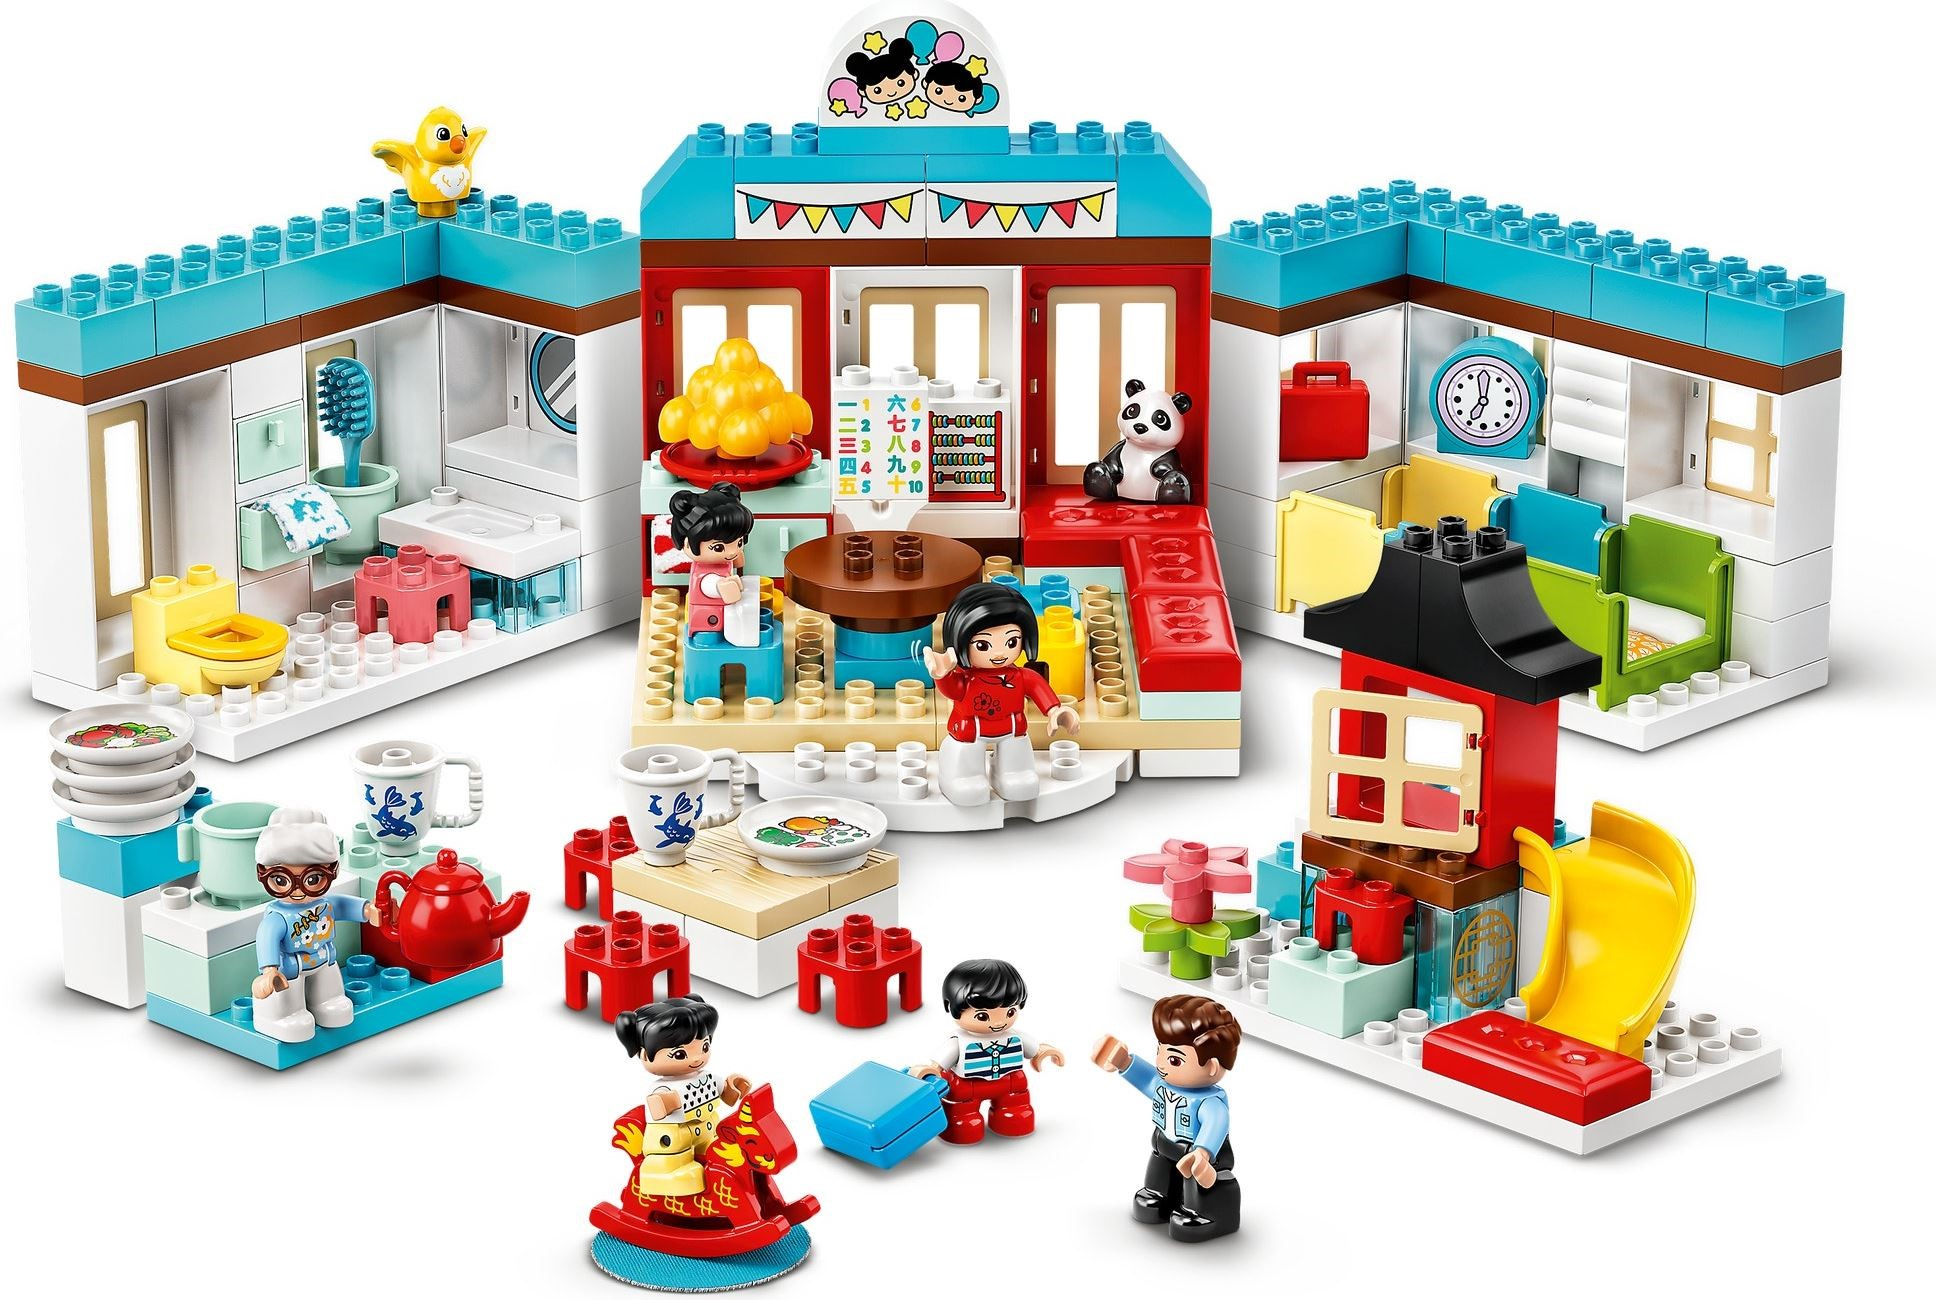 Chinese New Year And Monkie Kid 2021 Sets Revealed Brickset Lego Set Guide And Database